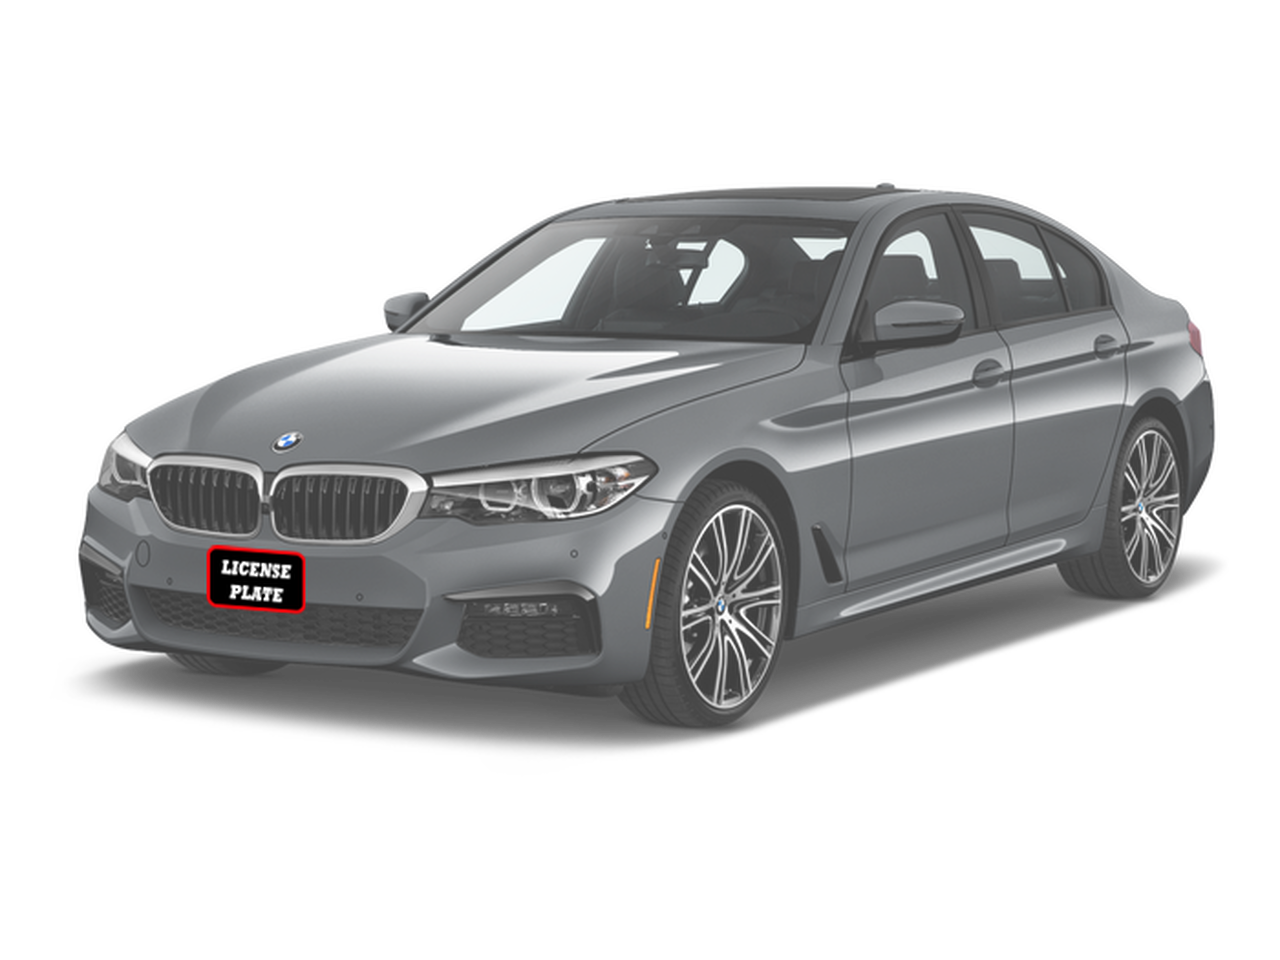 New Front License Plate For BMW 5 Series M PACKAGE